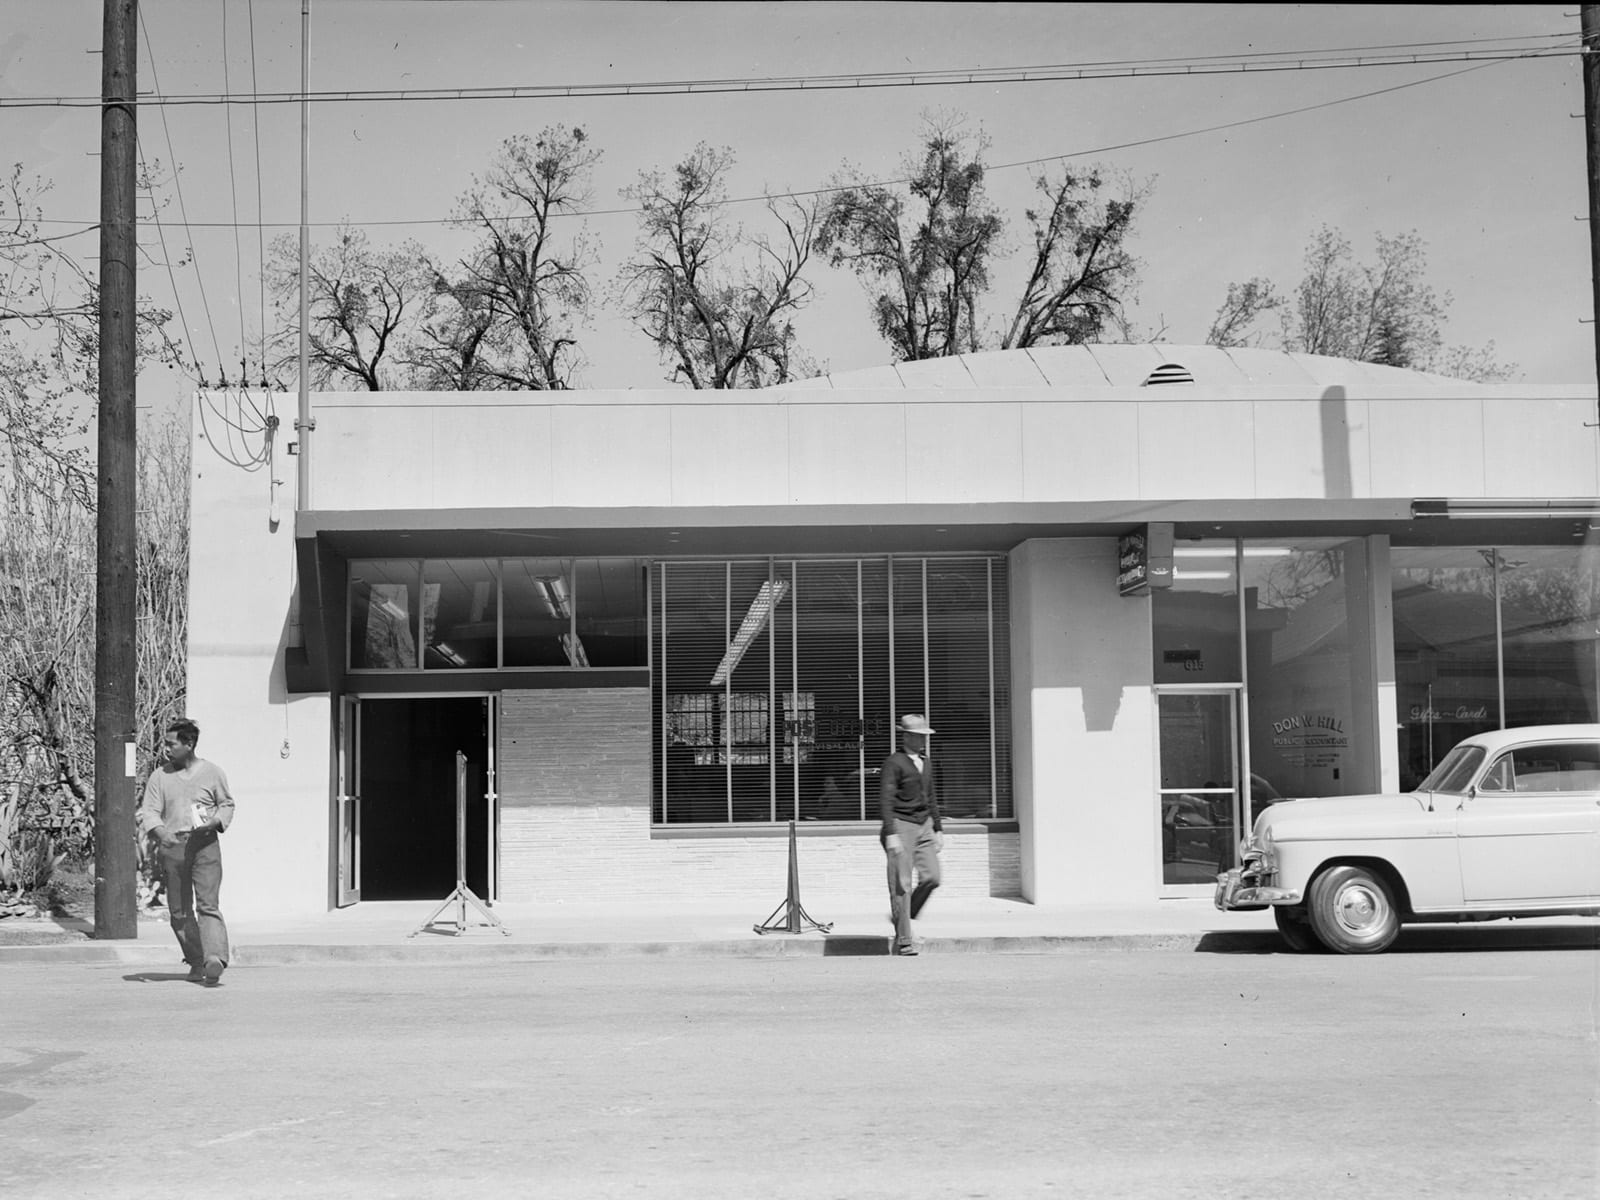 Post Office, Second Street, 1951